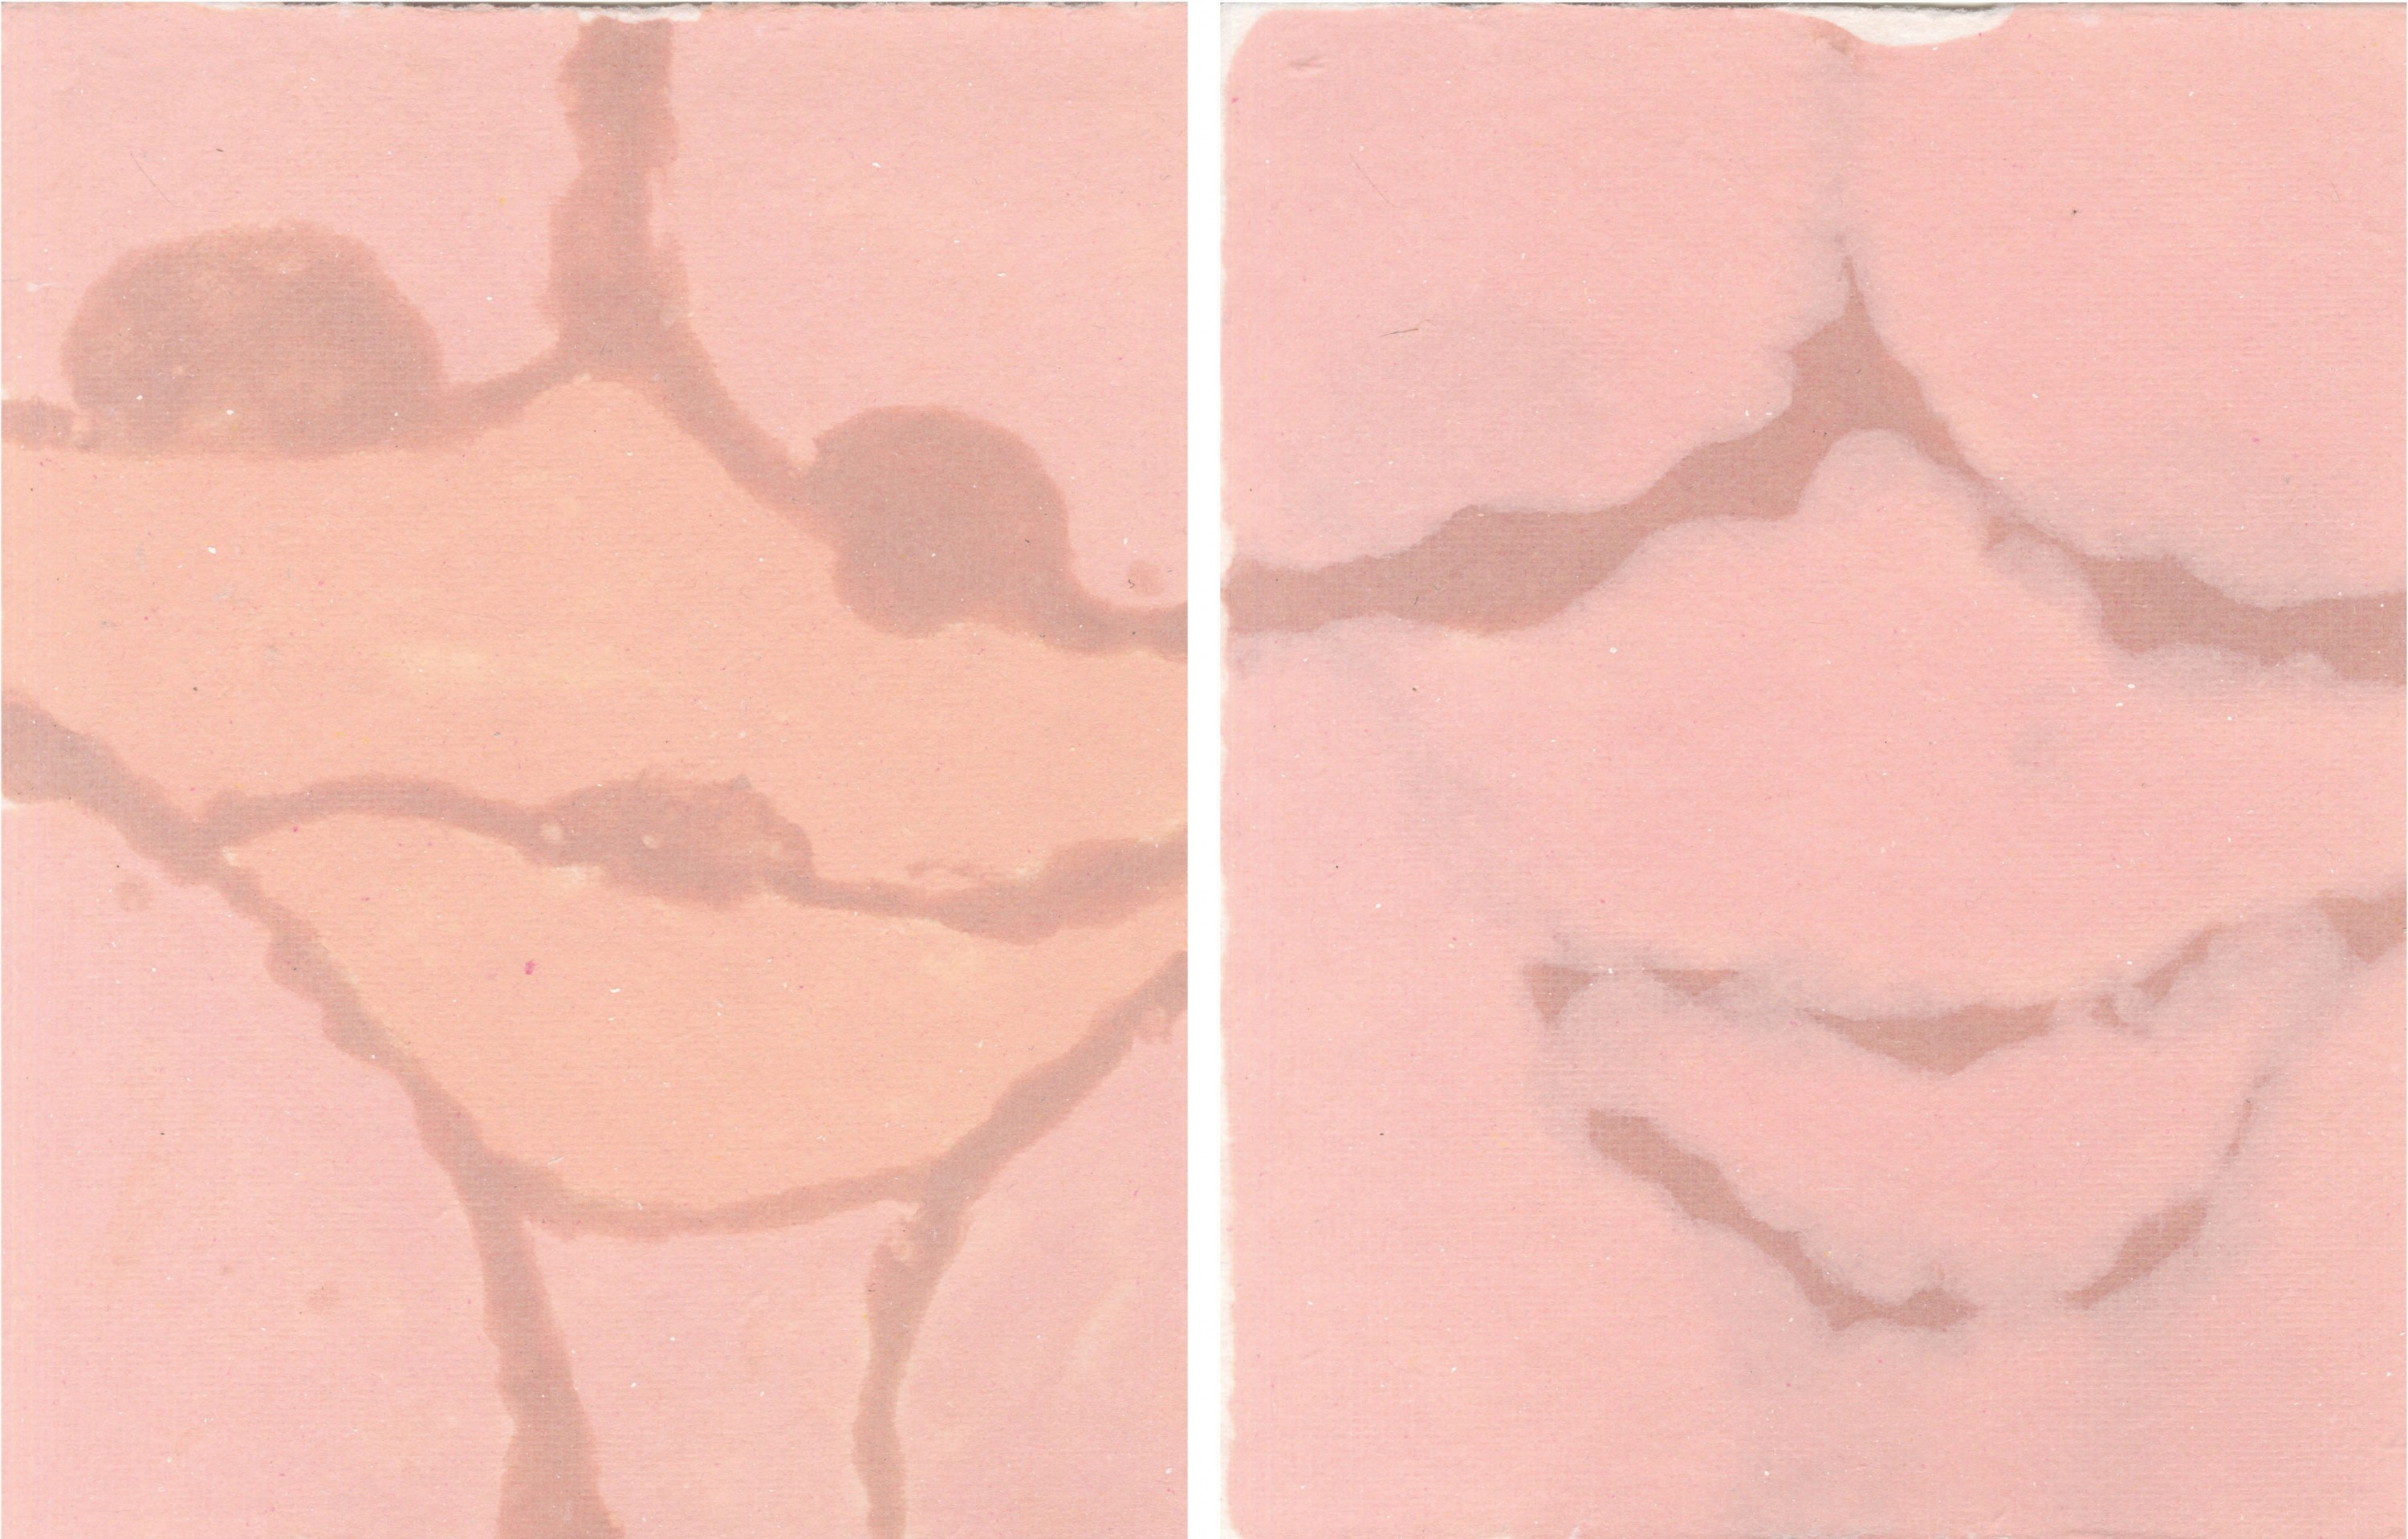 First image shows a nude color pulp painting of a female torso, including the breasts, stomach, and thighs. These body parts are outlined by a darker nude color. Second image shows a nude color pulp painting of a woman's vagina, including her thighs. Thes